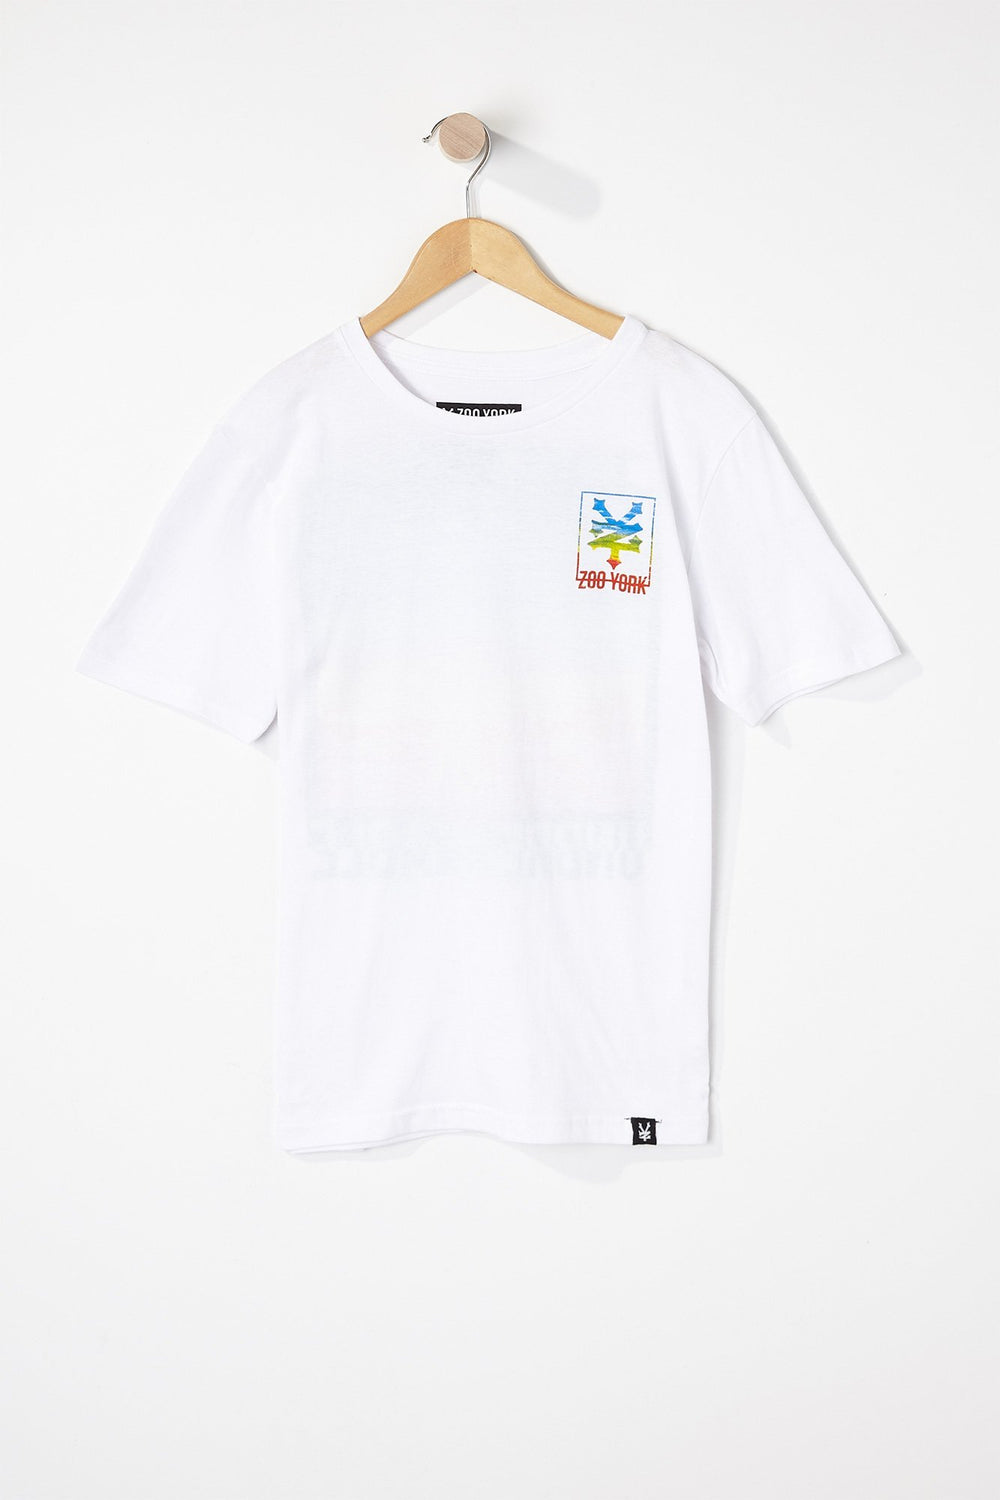 Zoo York Boys Tie Dye Square T-Shirt White